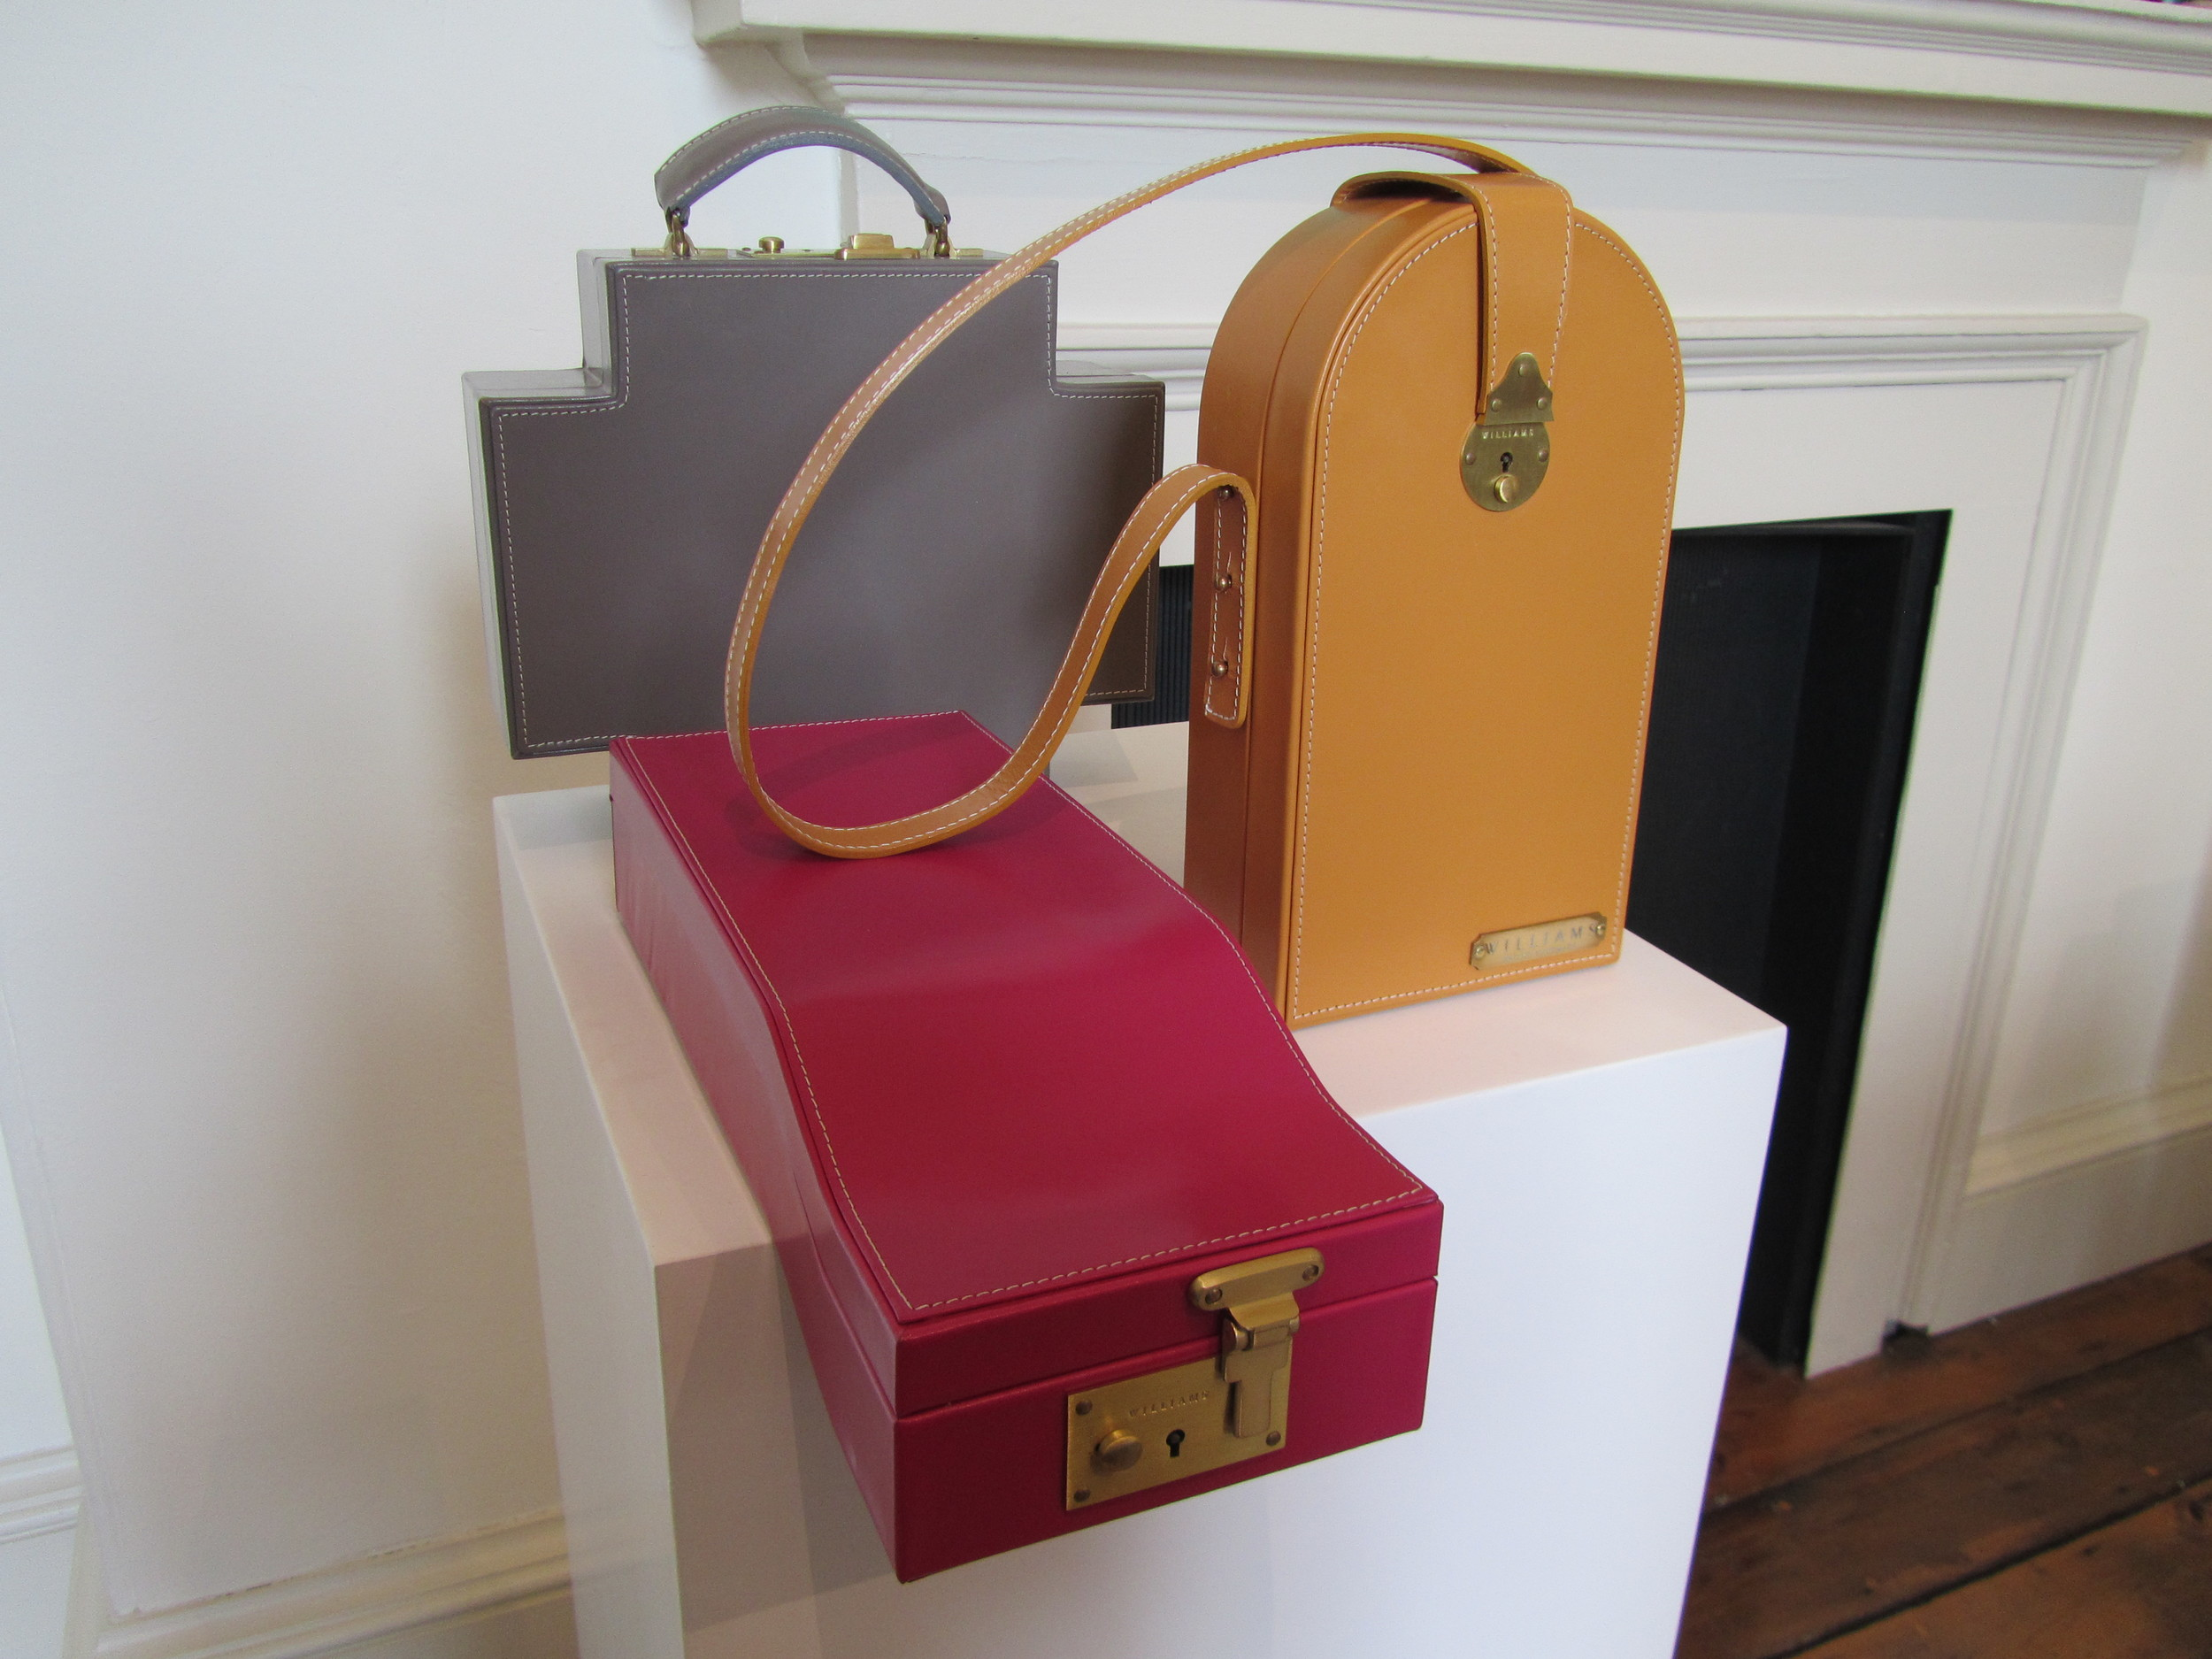 Williams Handmade, fun, functional and beautifully made in quality materials, bags to fill a niche in your wardrobe.